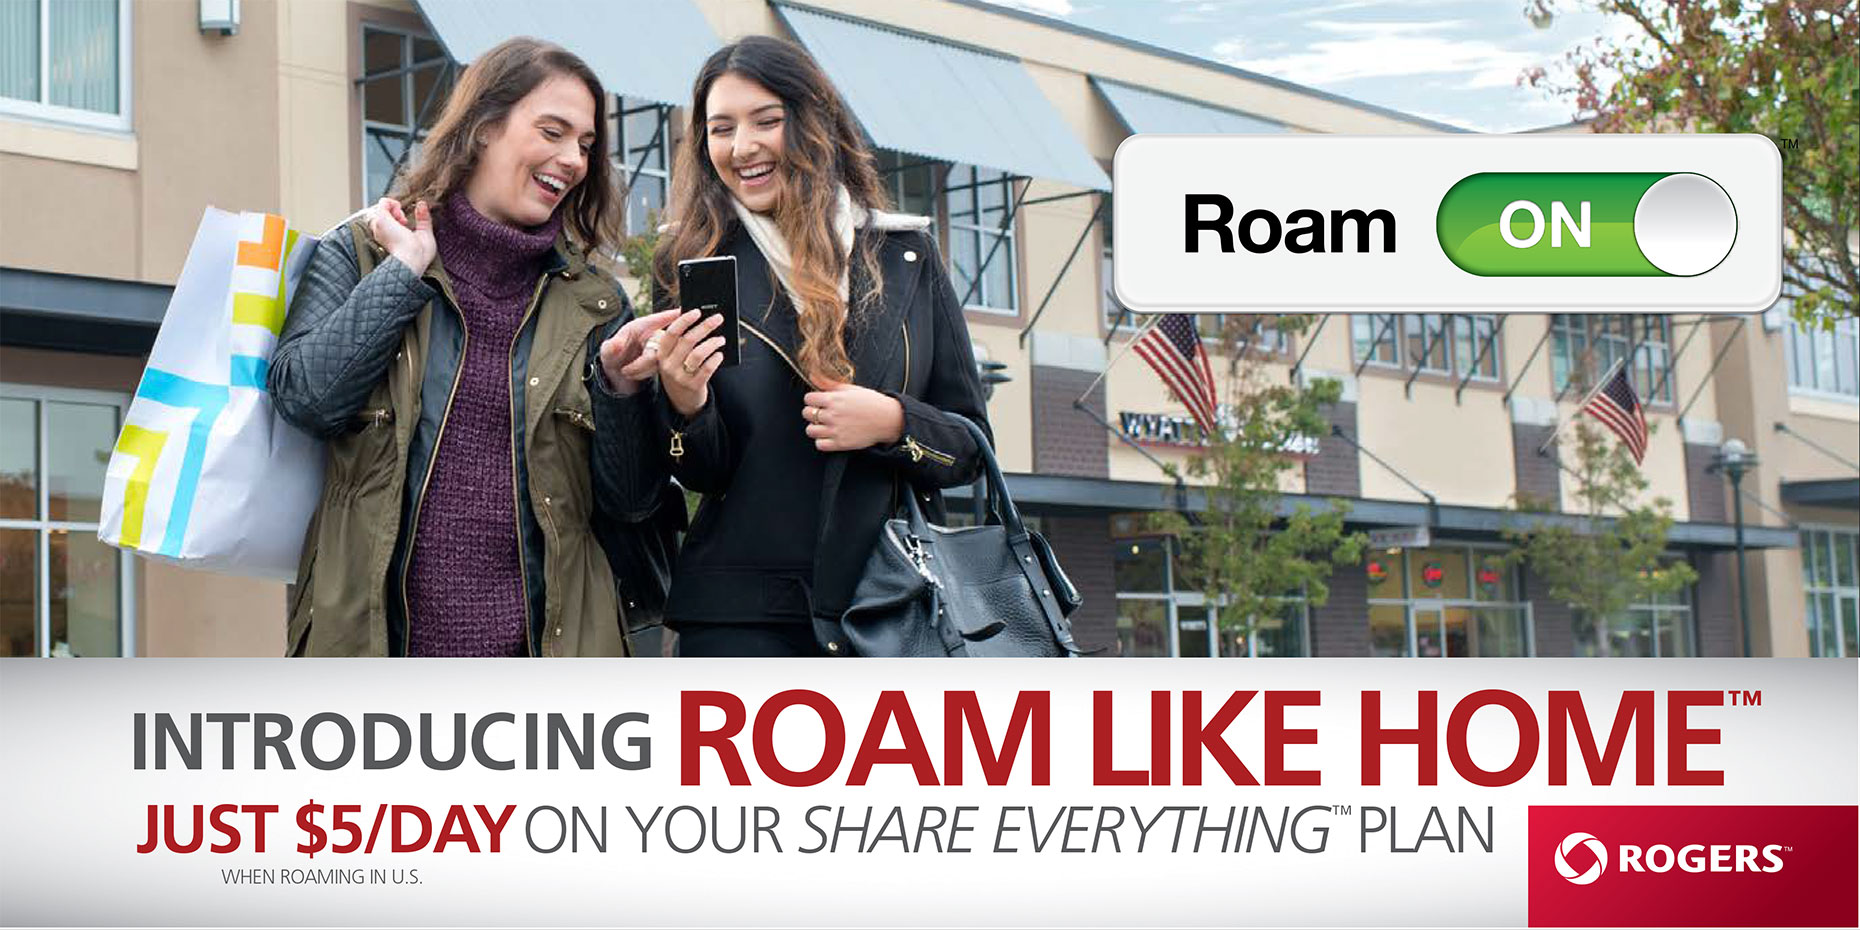 Rogers print advertising campaign featured photo